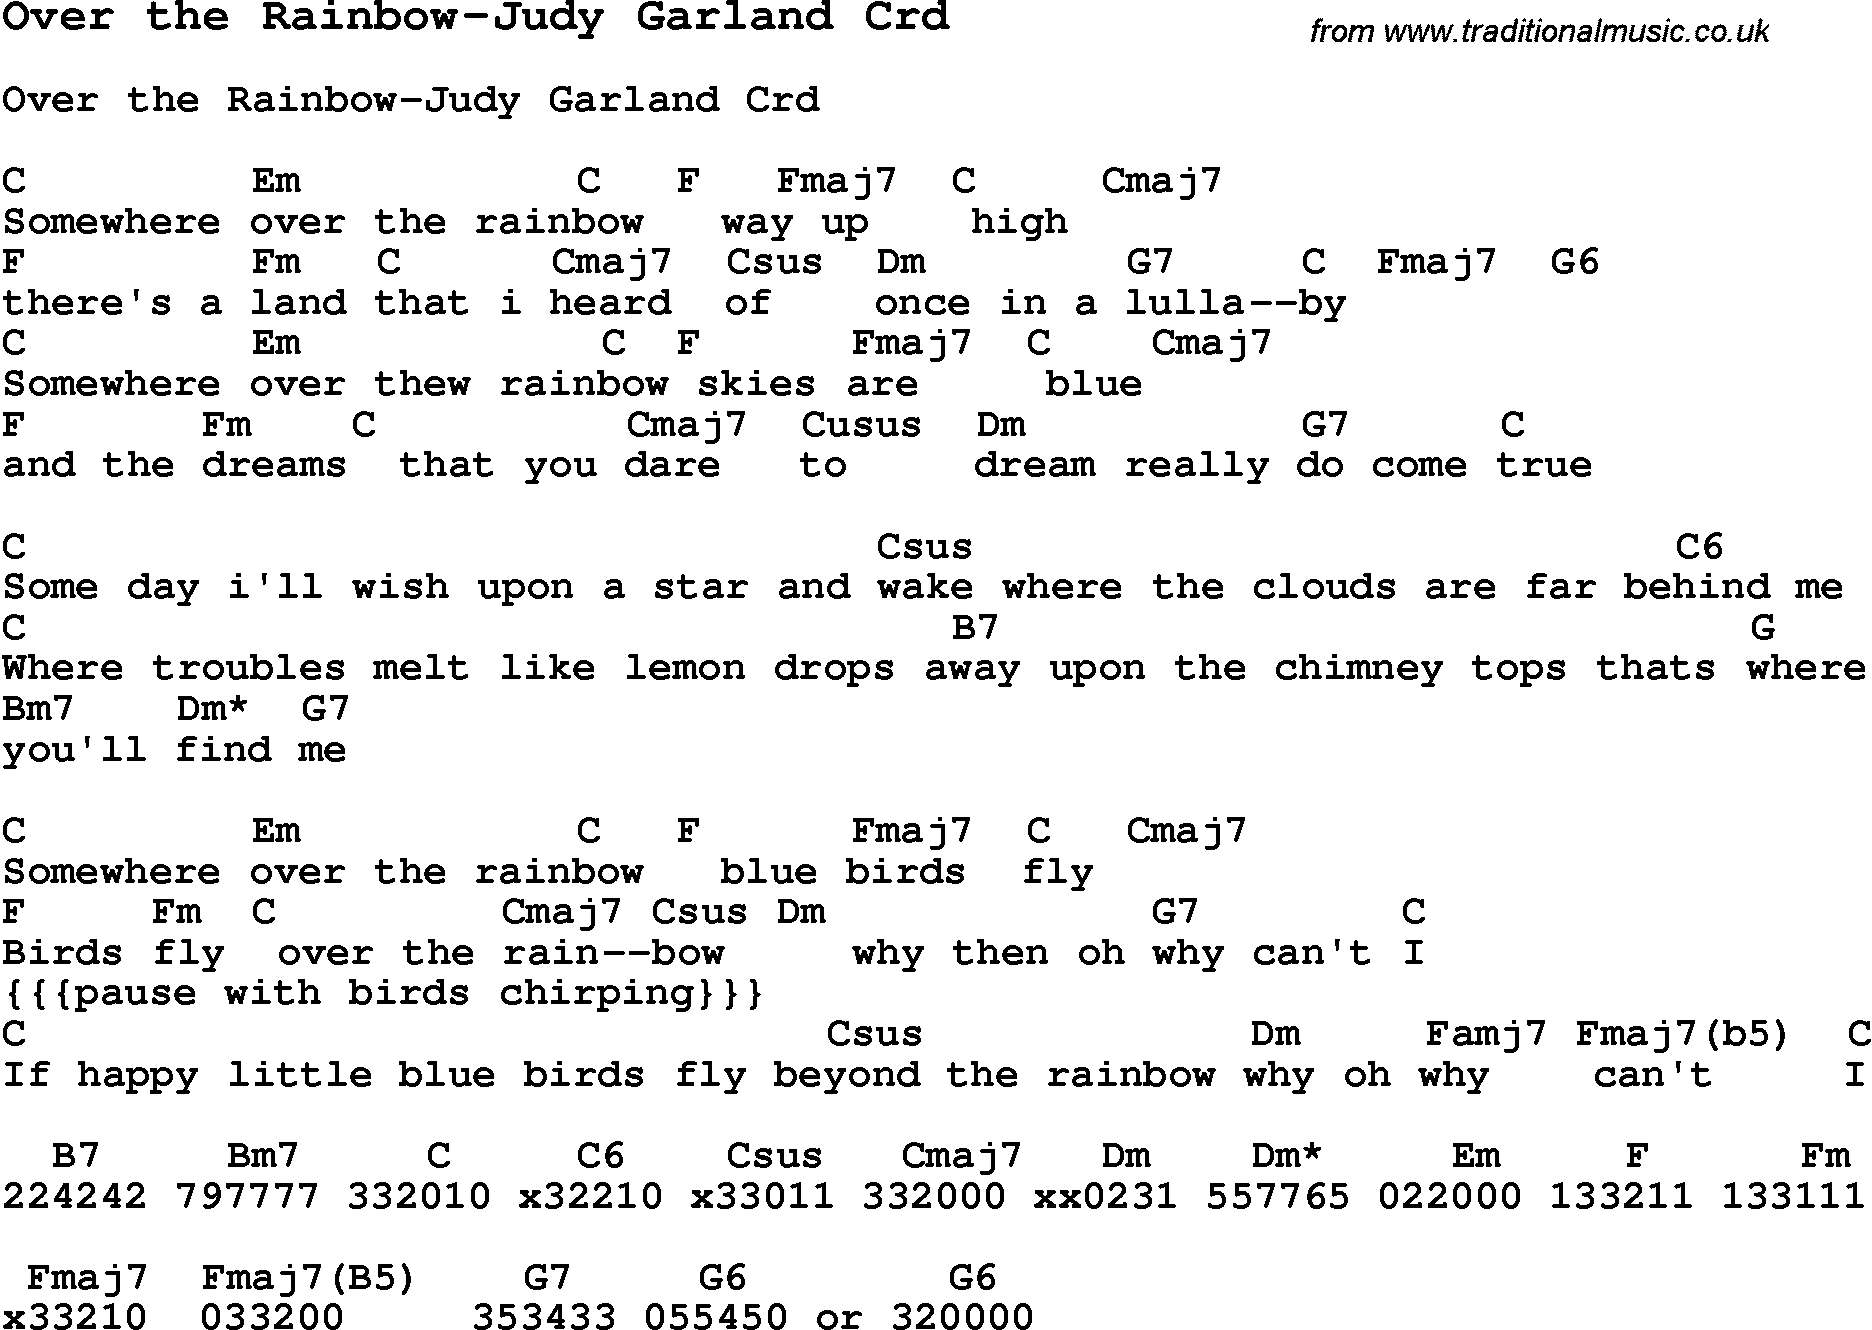 Skiffle lyrics for over the rainbow judy garland with chords for skiffle song lyrics for over the rainbow judy garland with chords for mandolin ukulele hexwebz Choice Image